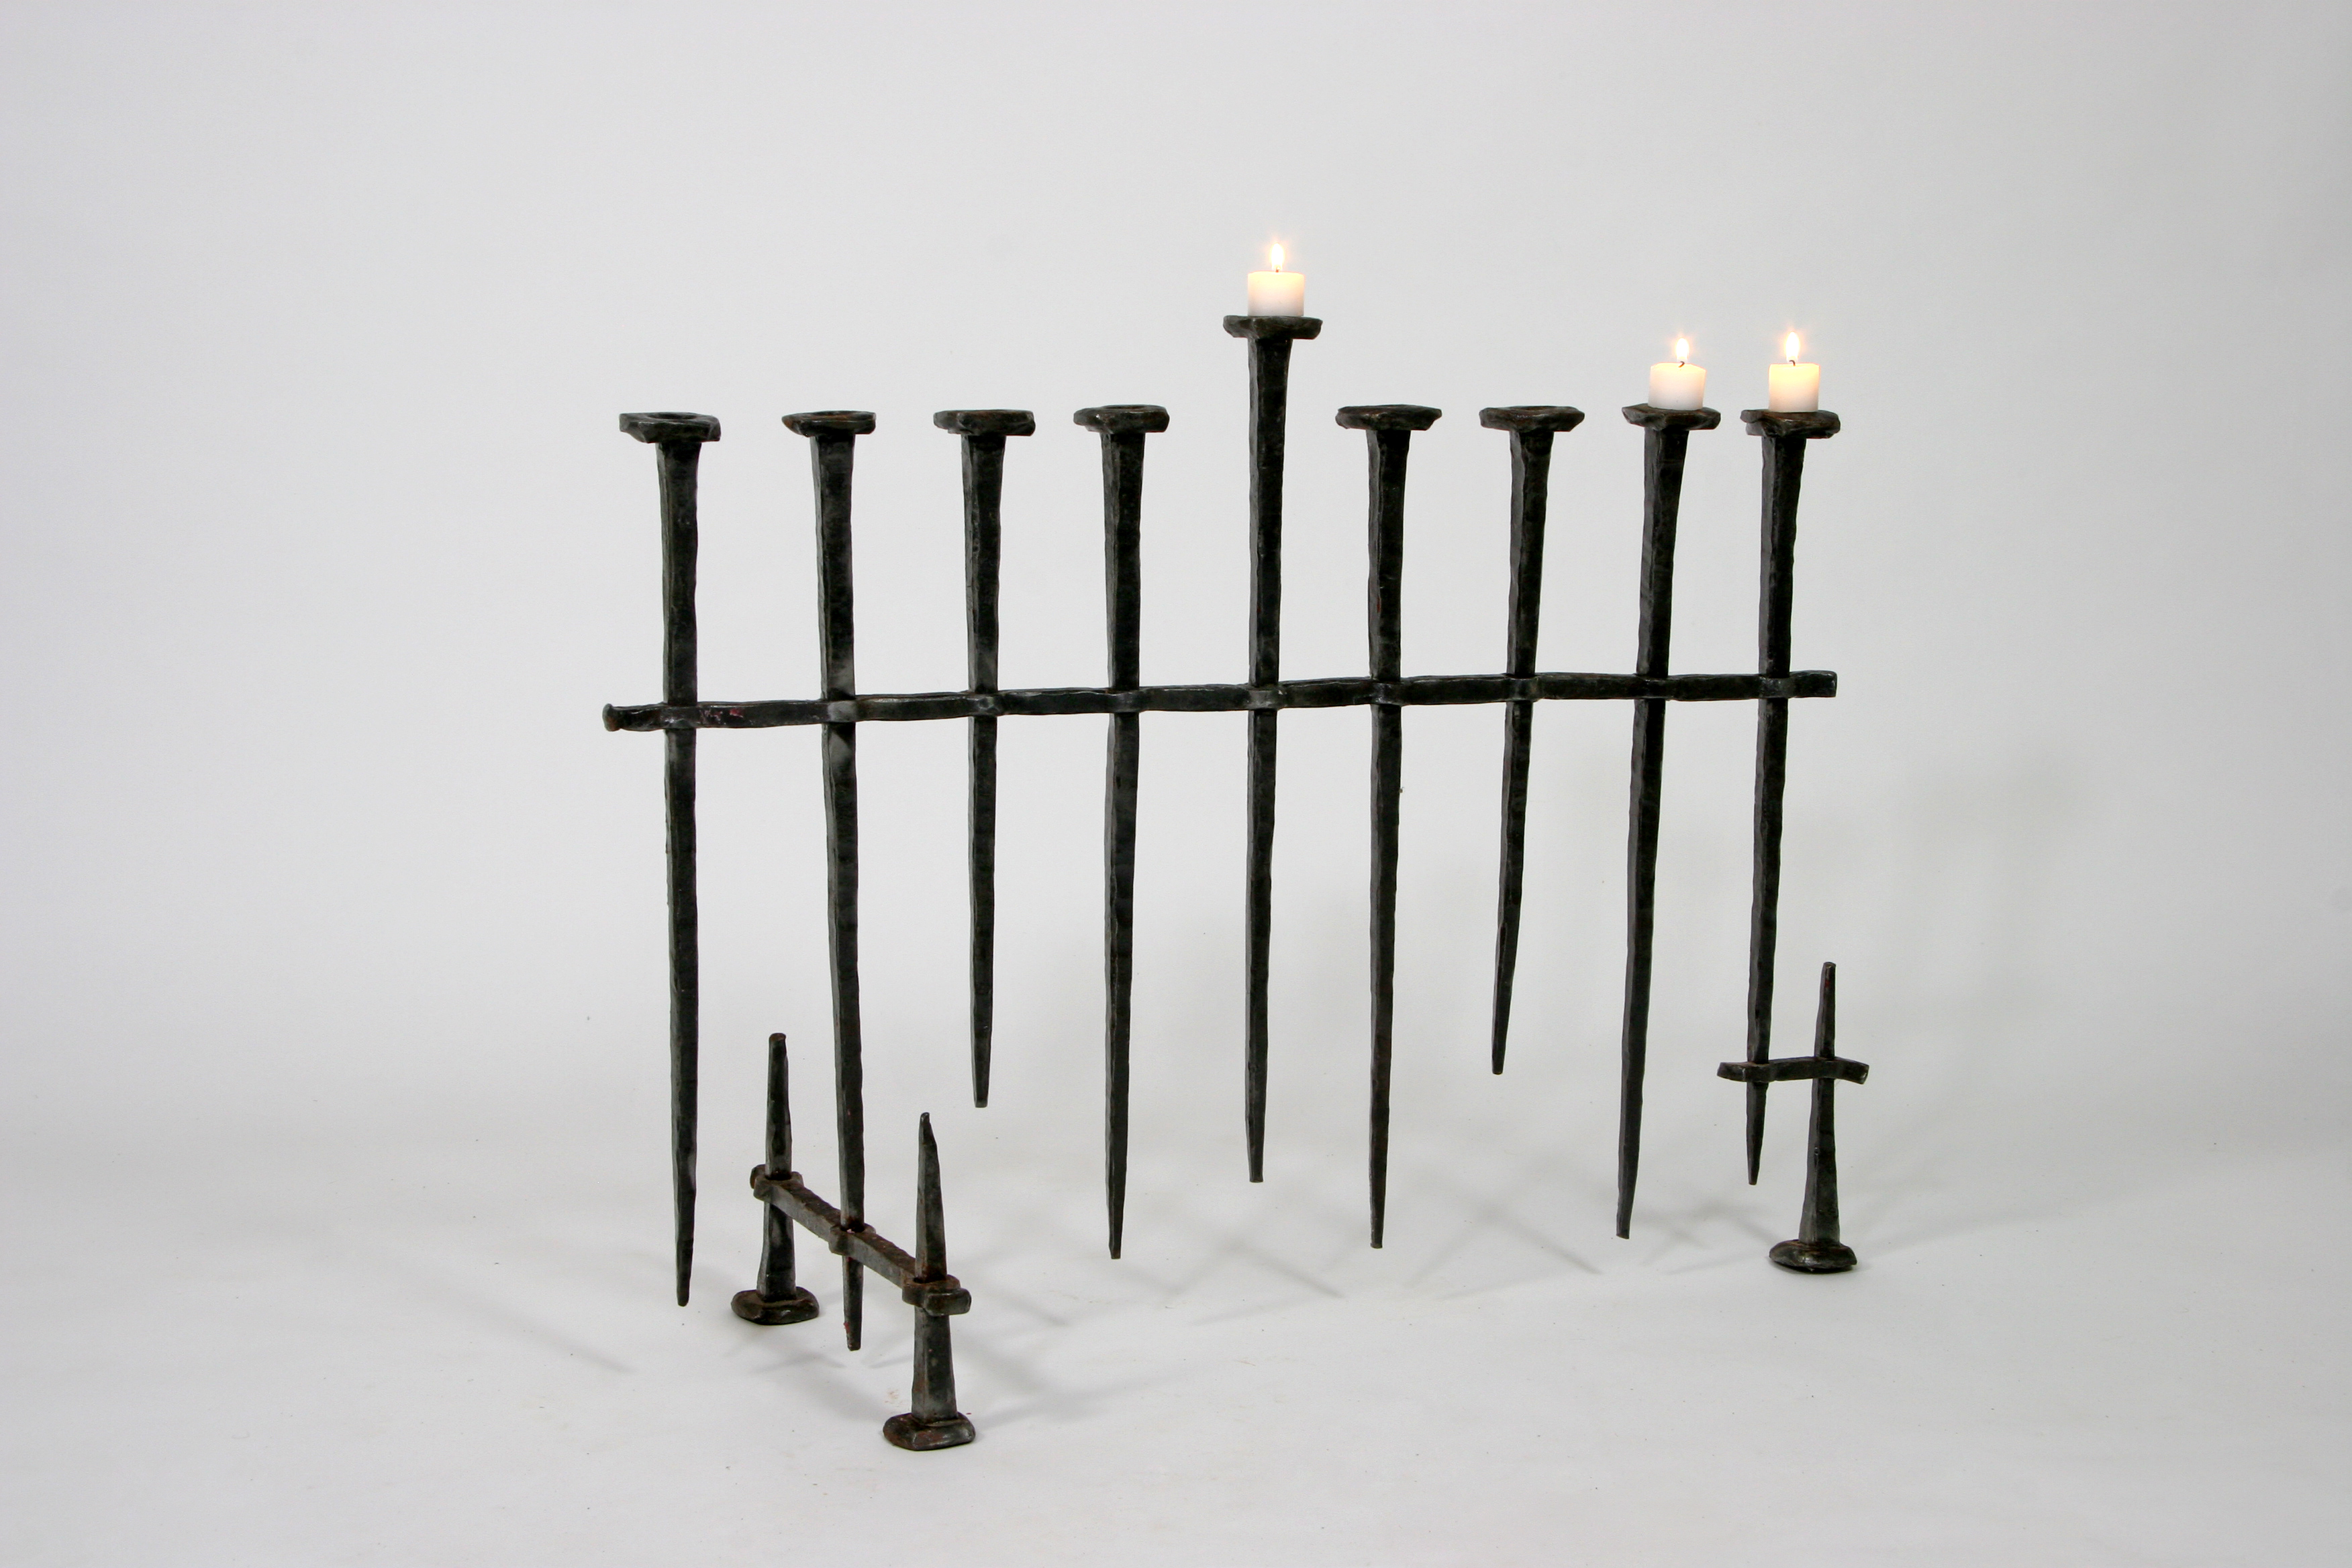 'Stake Hannukah Menorah' – Unique Menorah with Forged Iron Arms